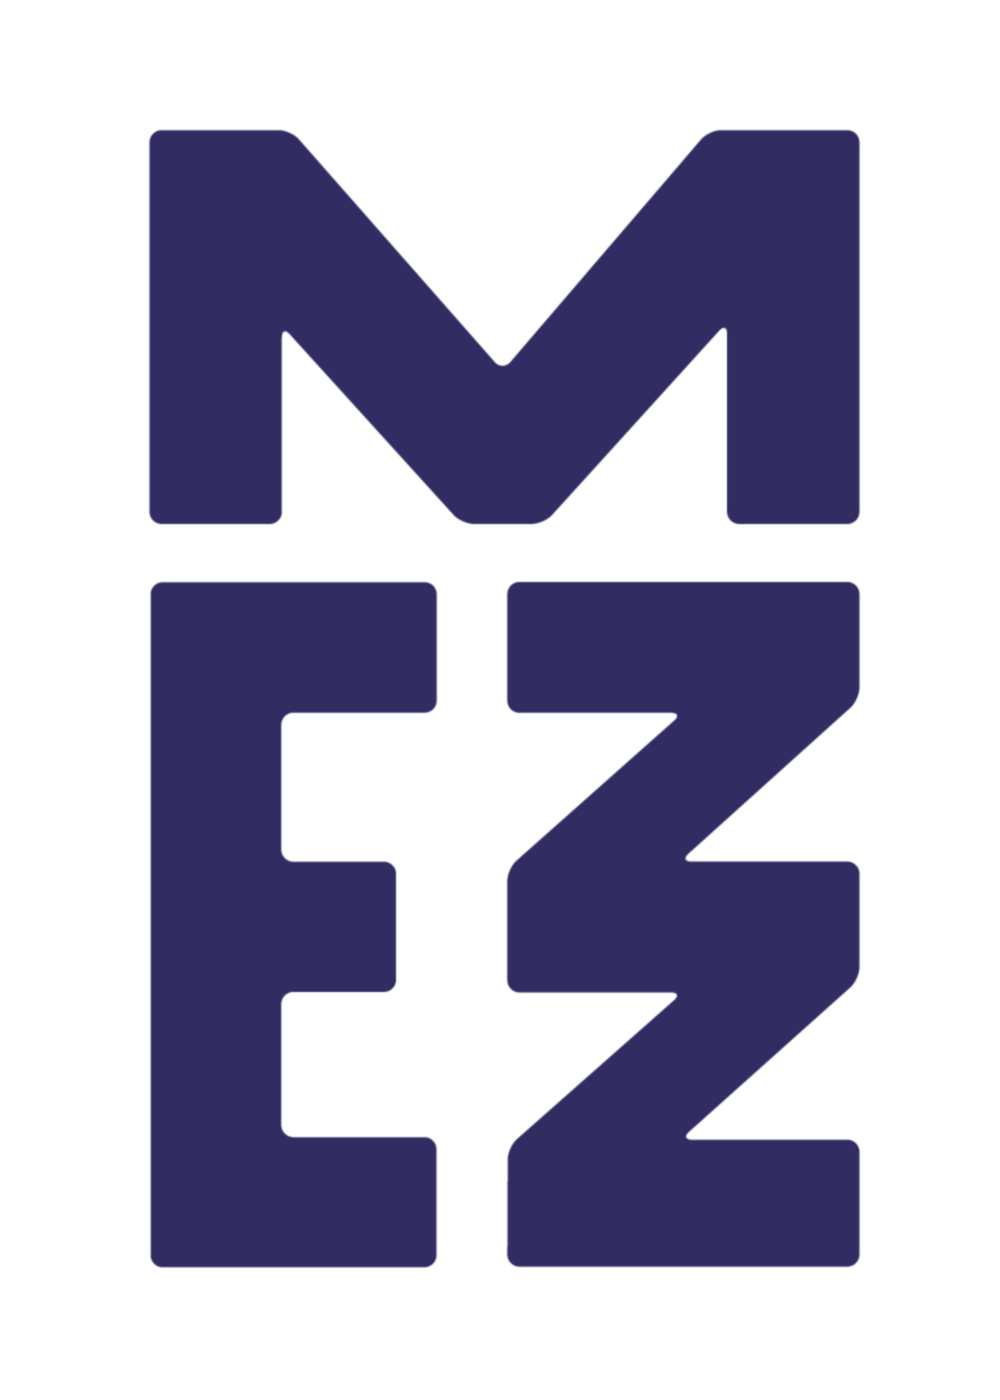 New Logo And Identity For Mezz By Das Buro L O G O Pinterest